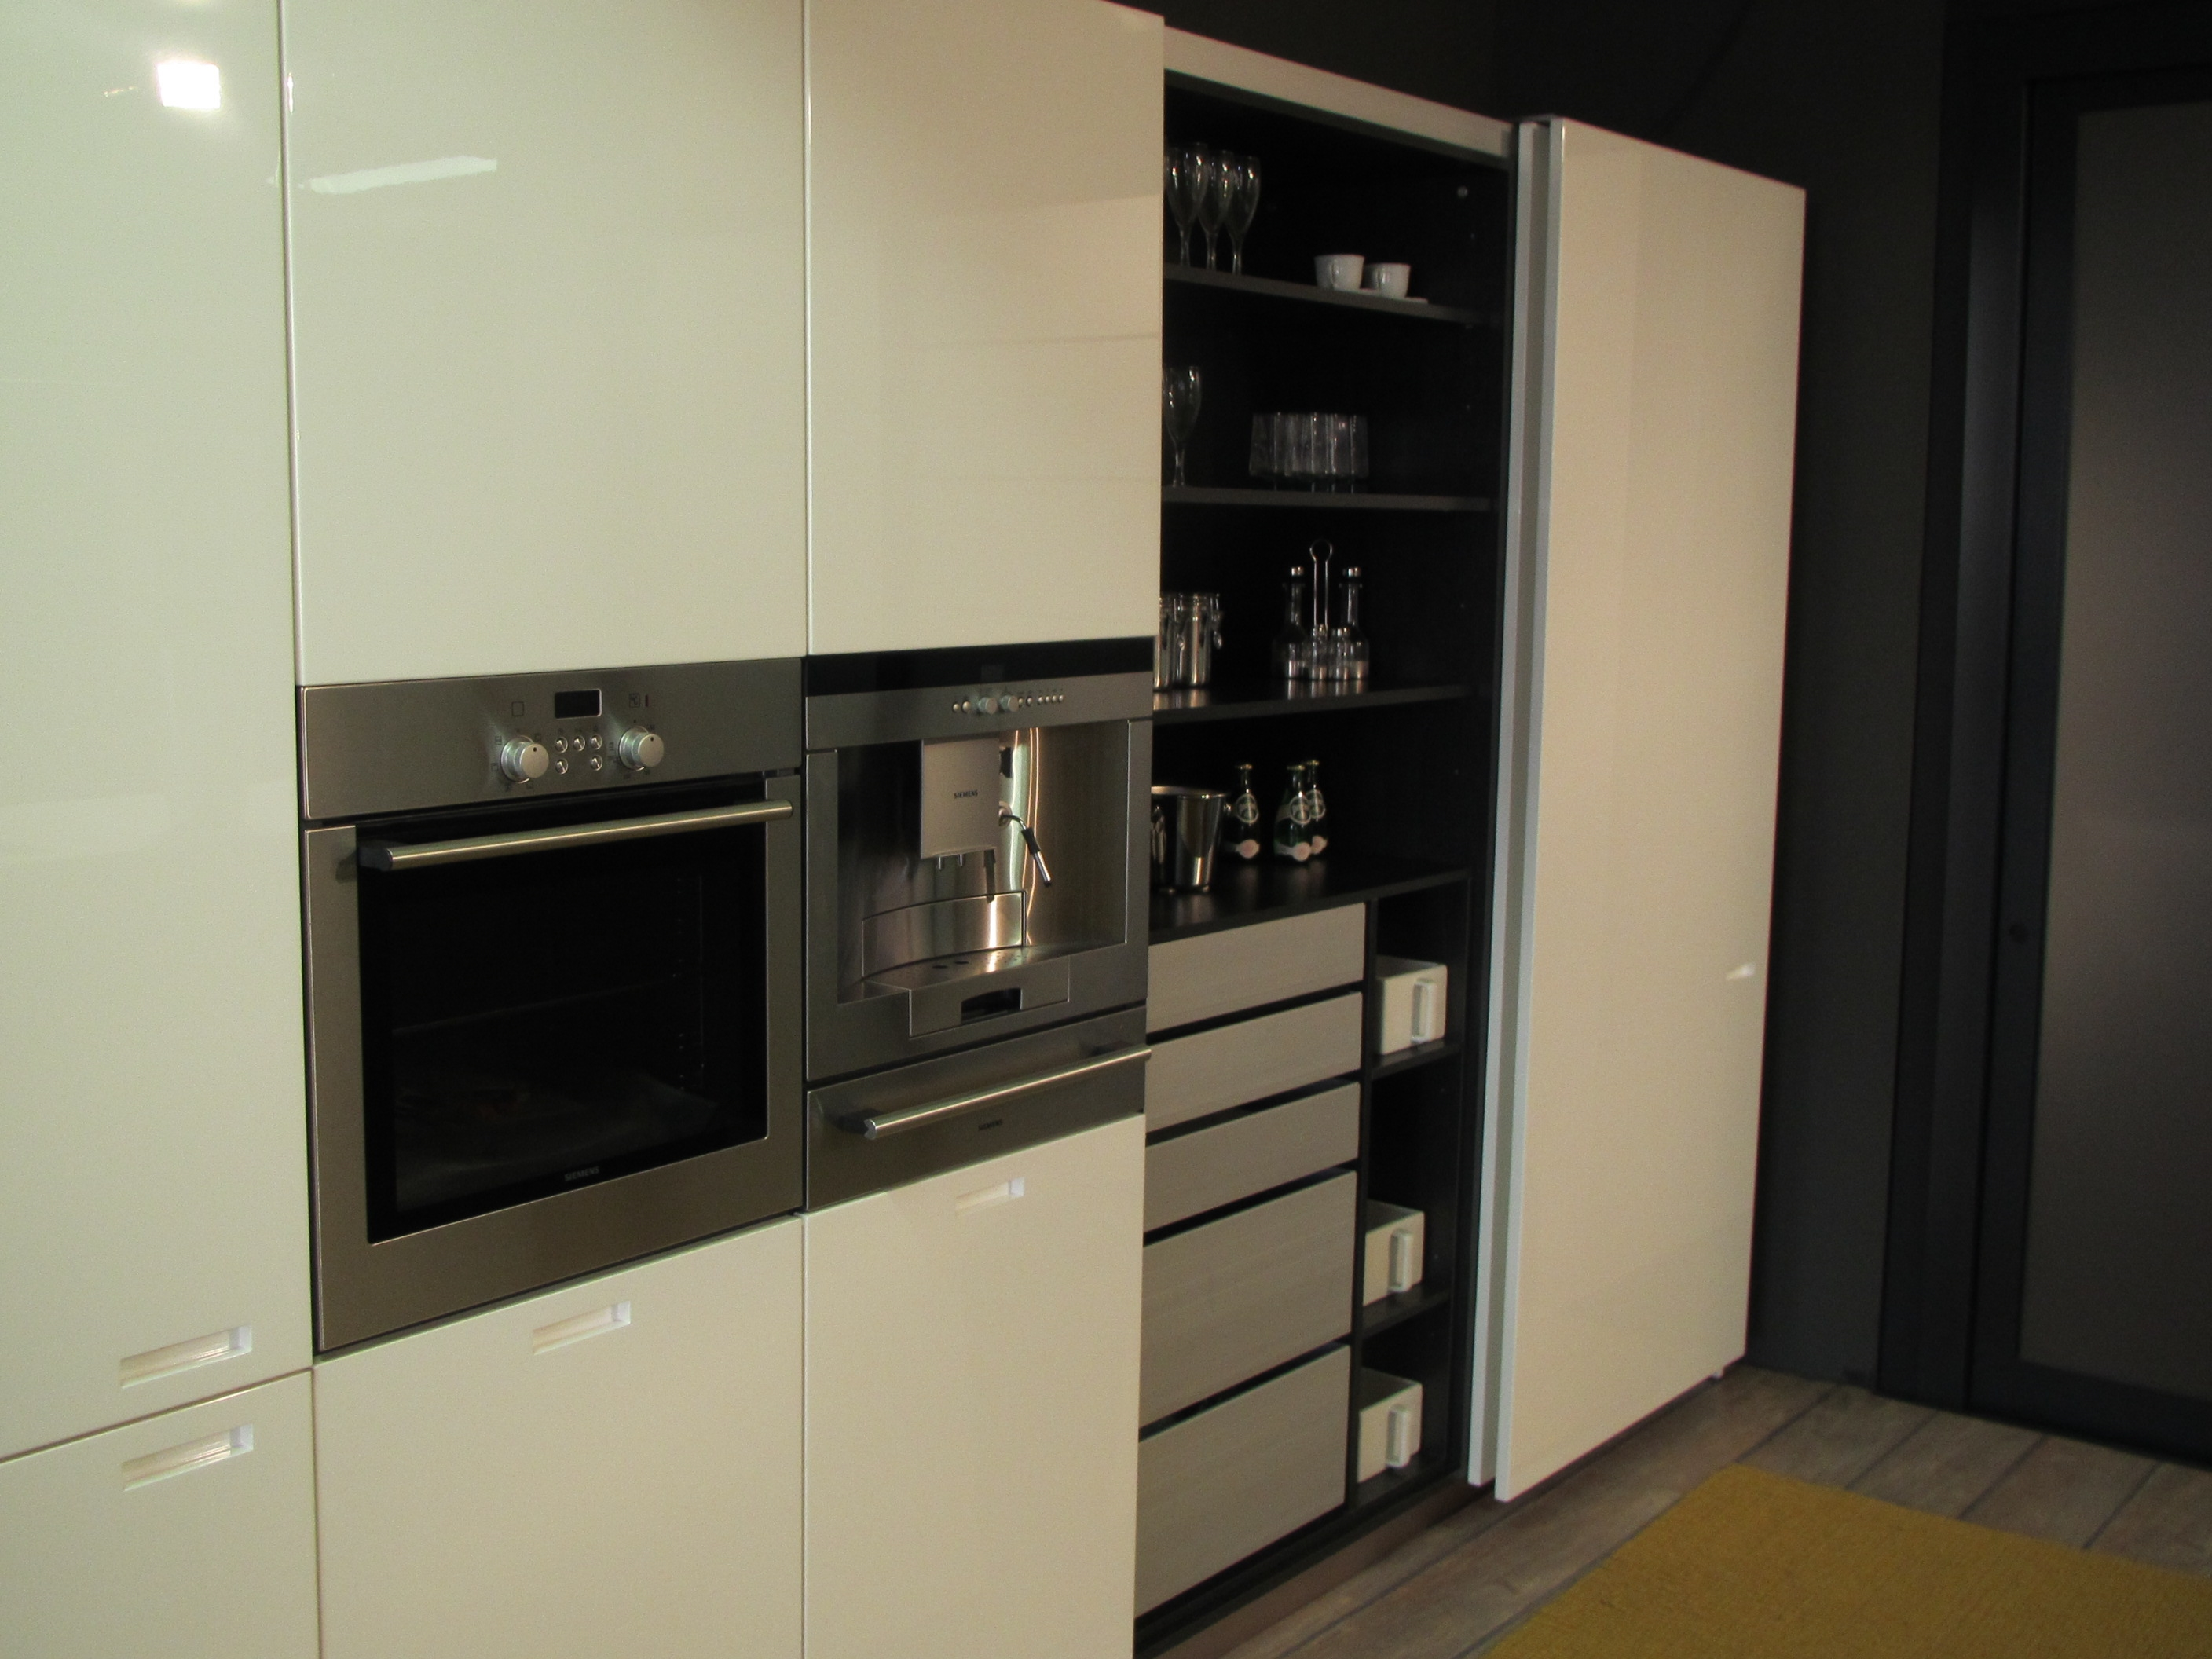 boffi outlet 18088 cucine a prezzi scontati. Black Bedroom Furniture Sets. Home Design Ideas